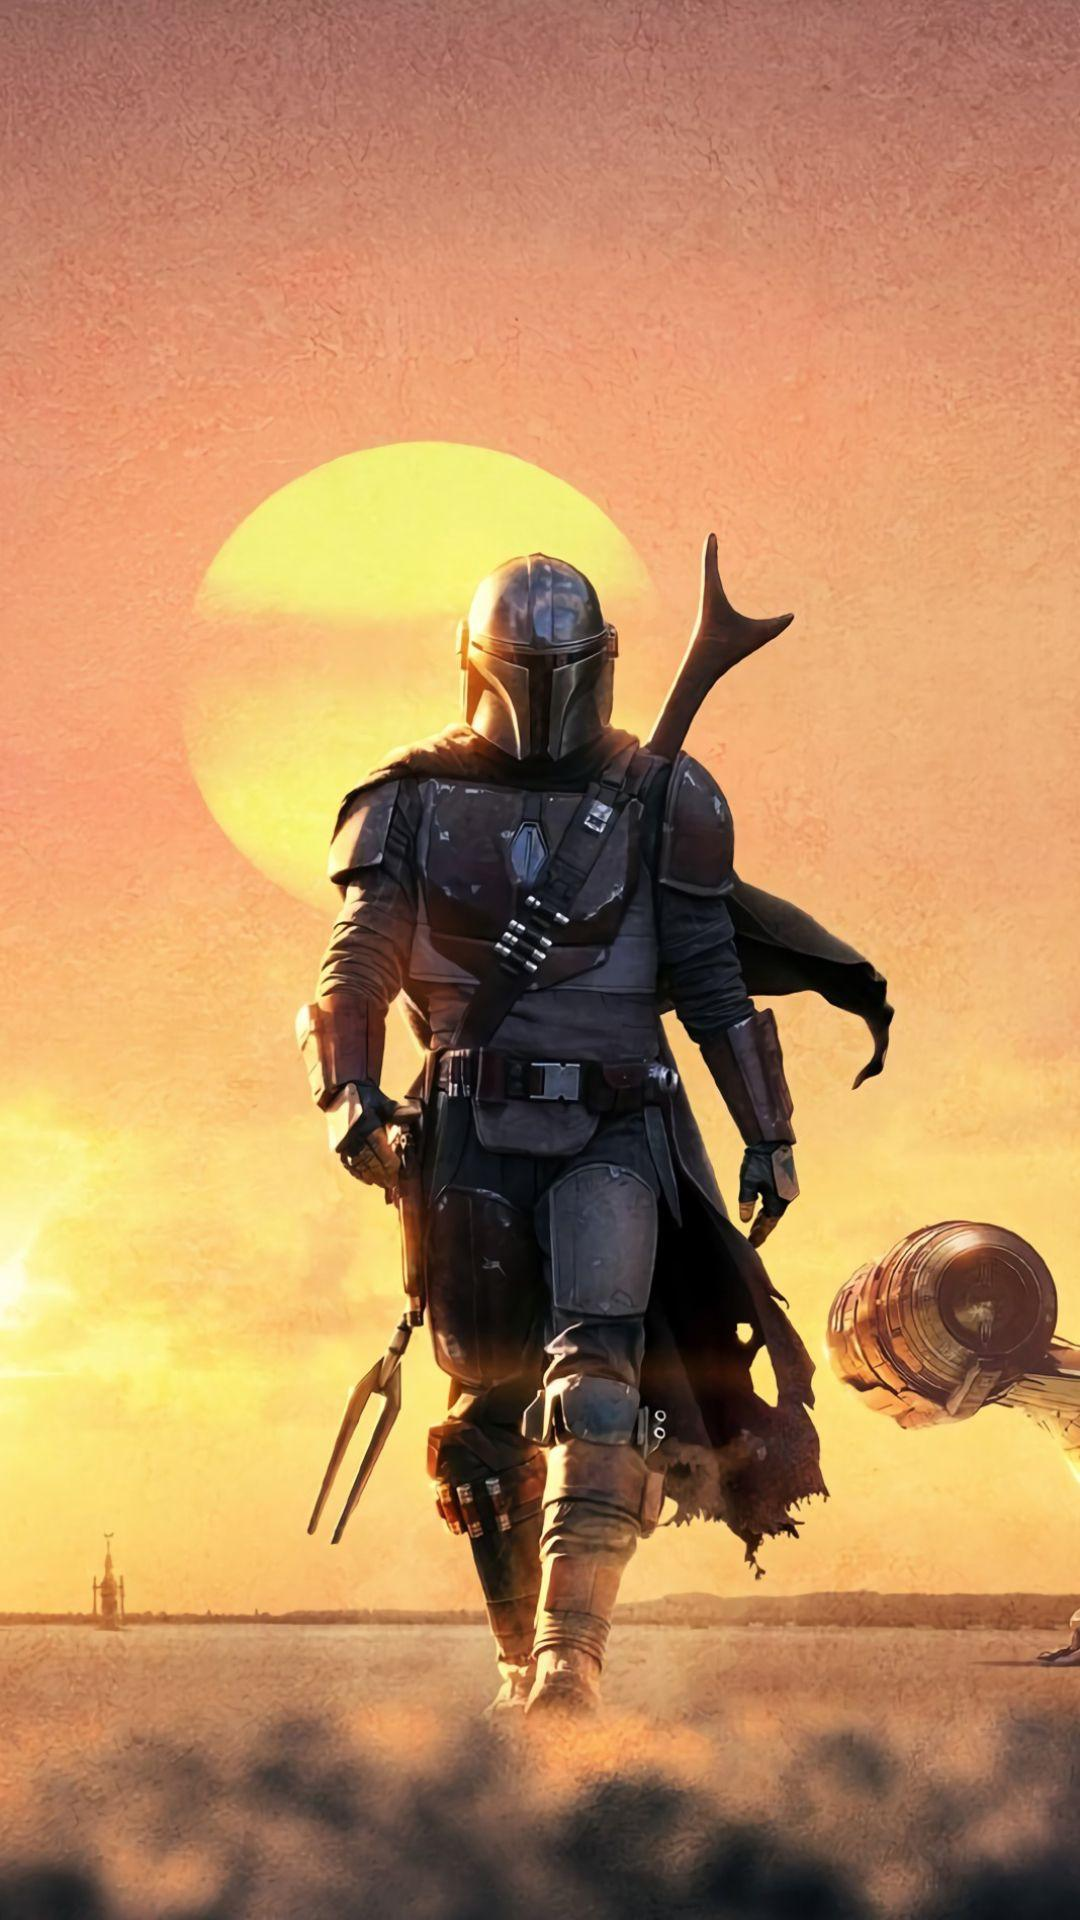 Mandalorian iPhone Wallpaper – Use Good background To Maintain Your iPhone's Beauty